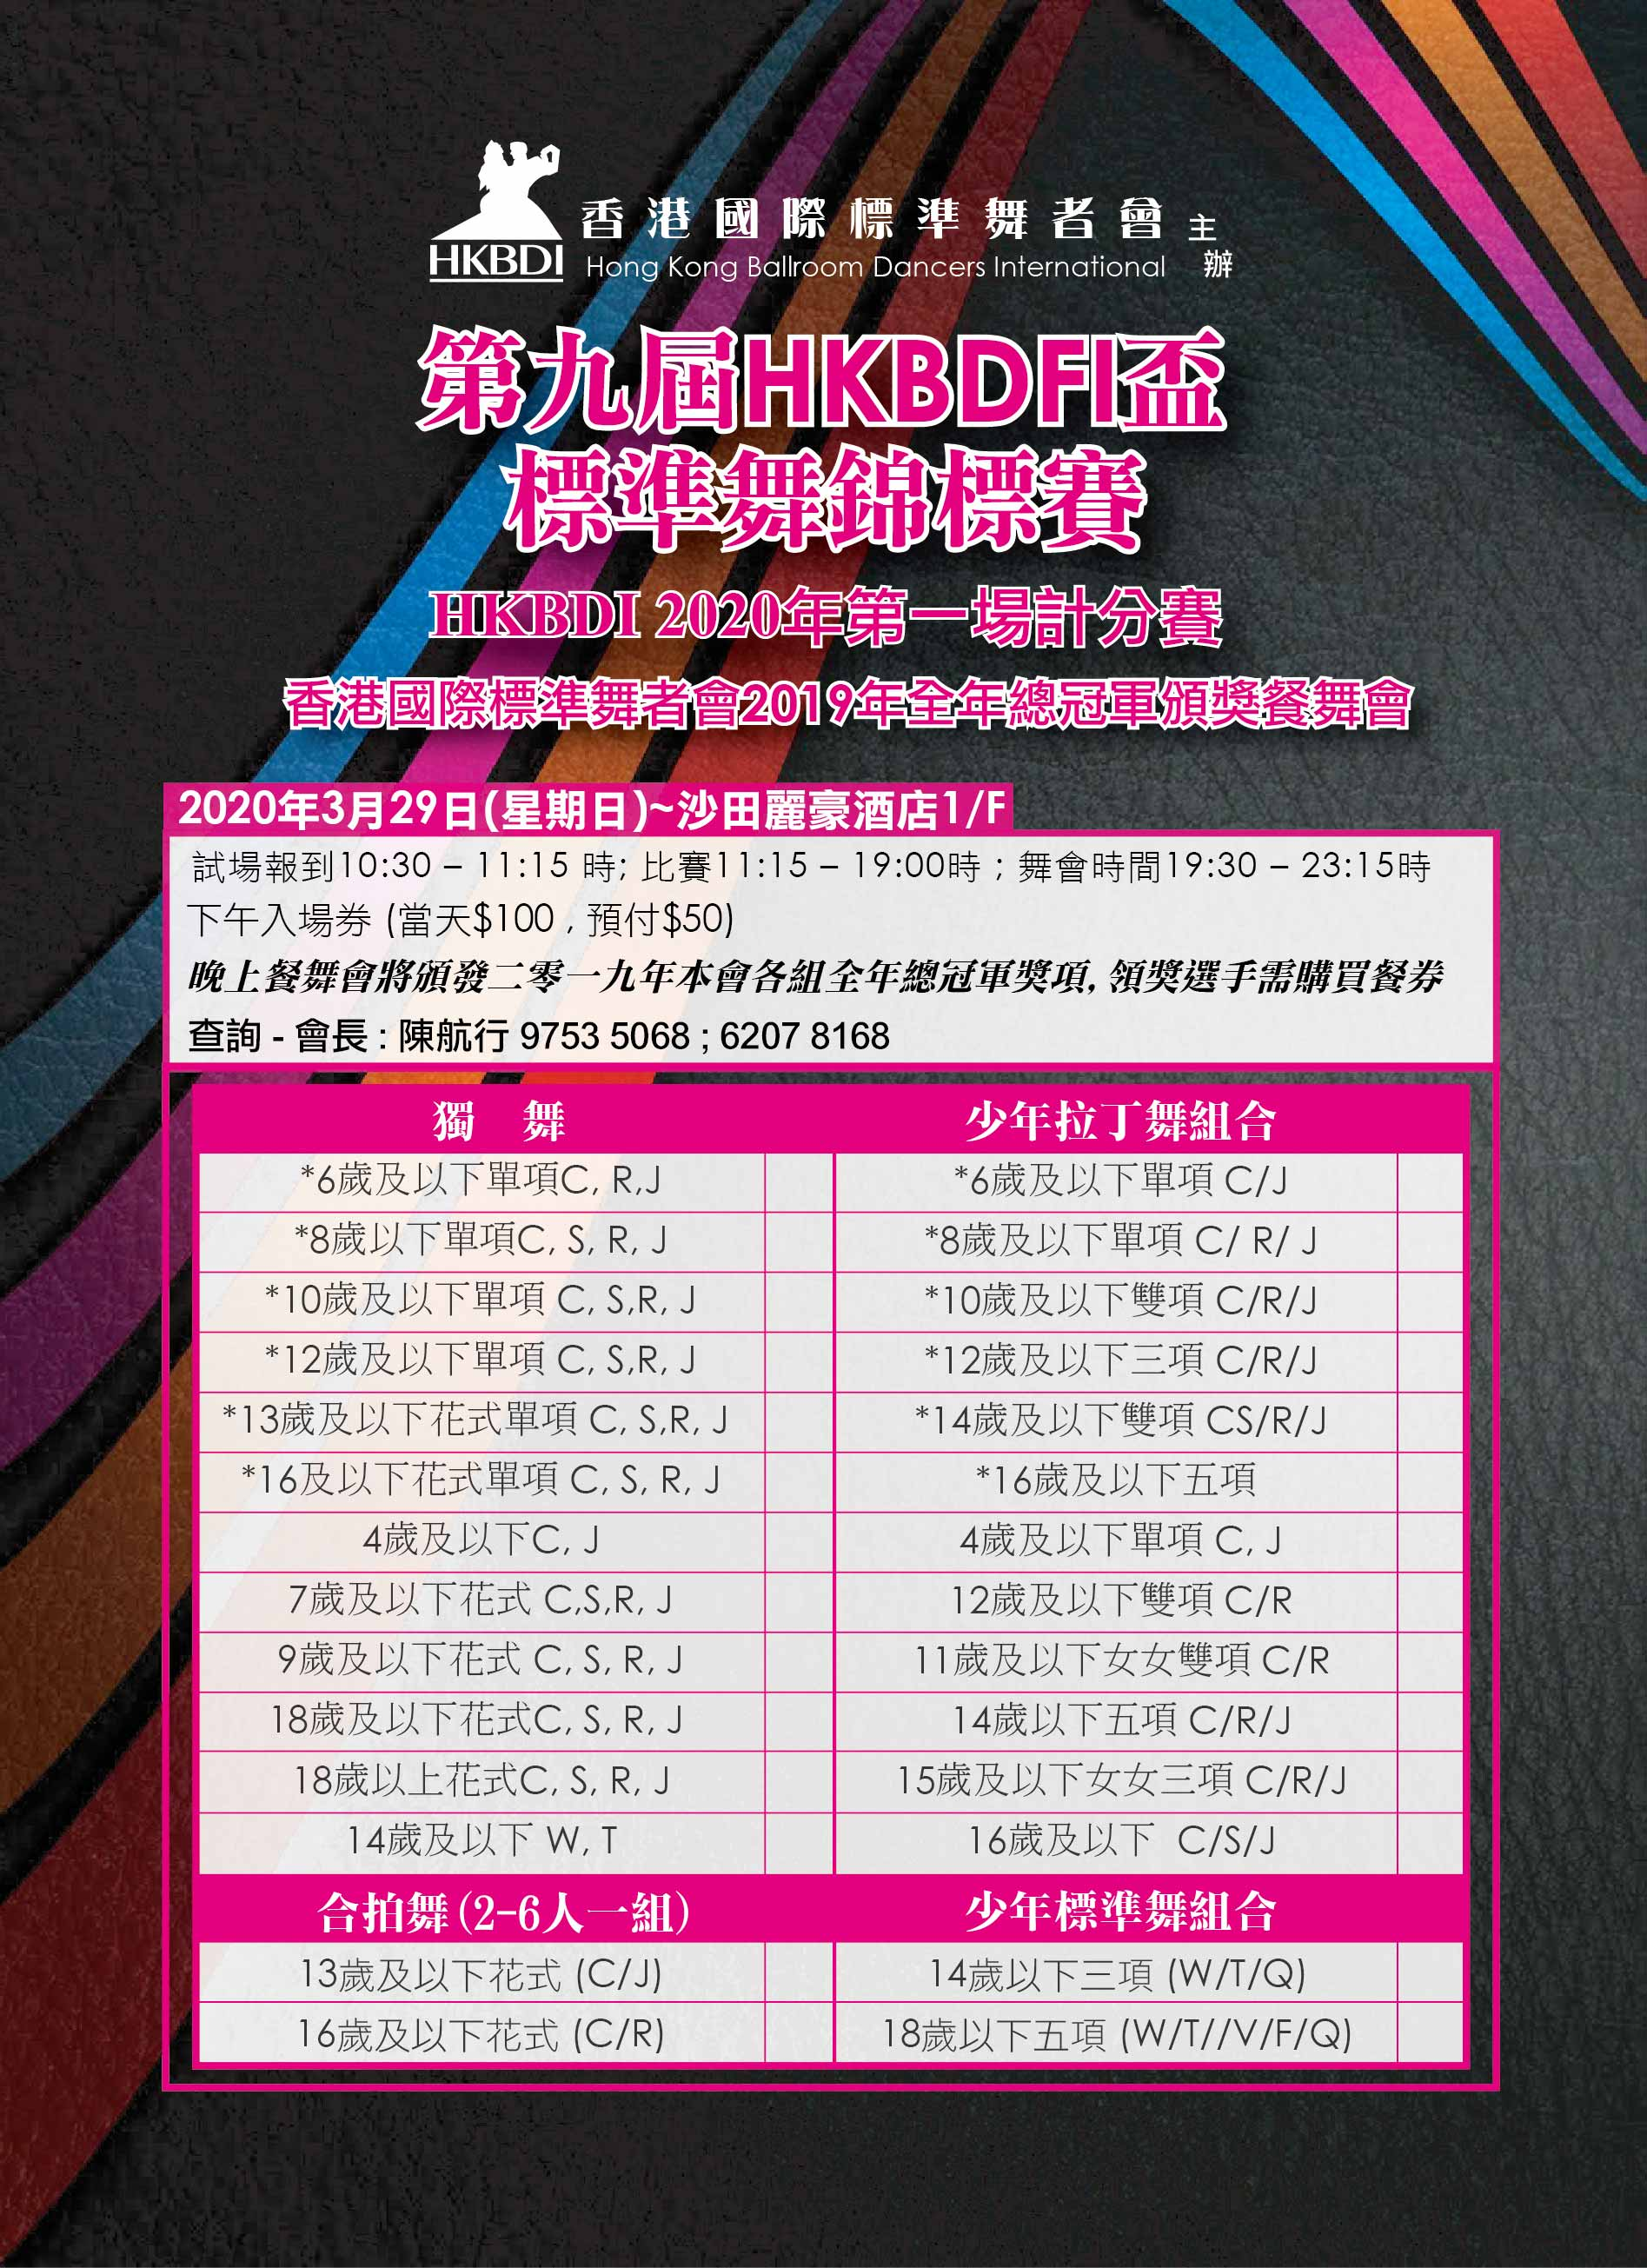 9th HKBDFI Cup Chinese p.1